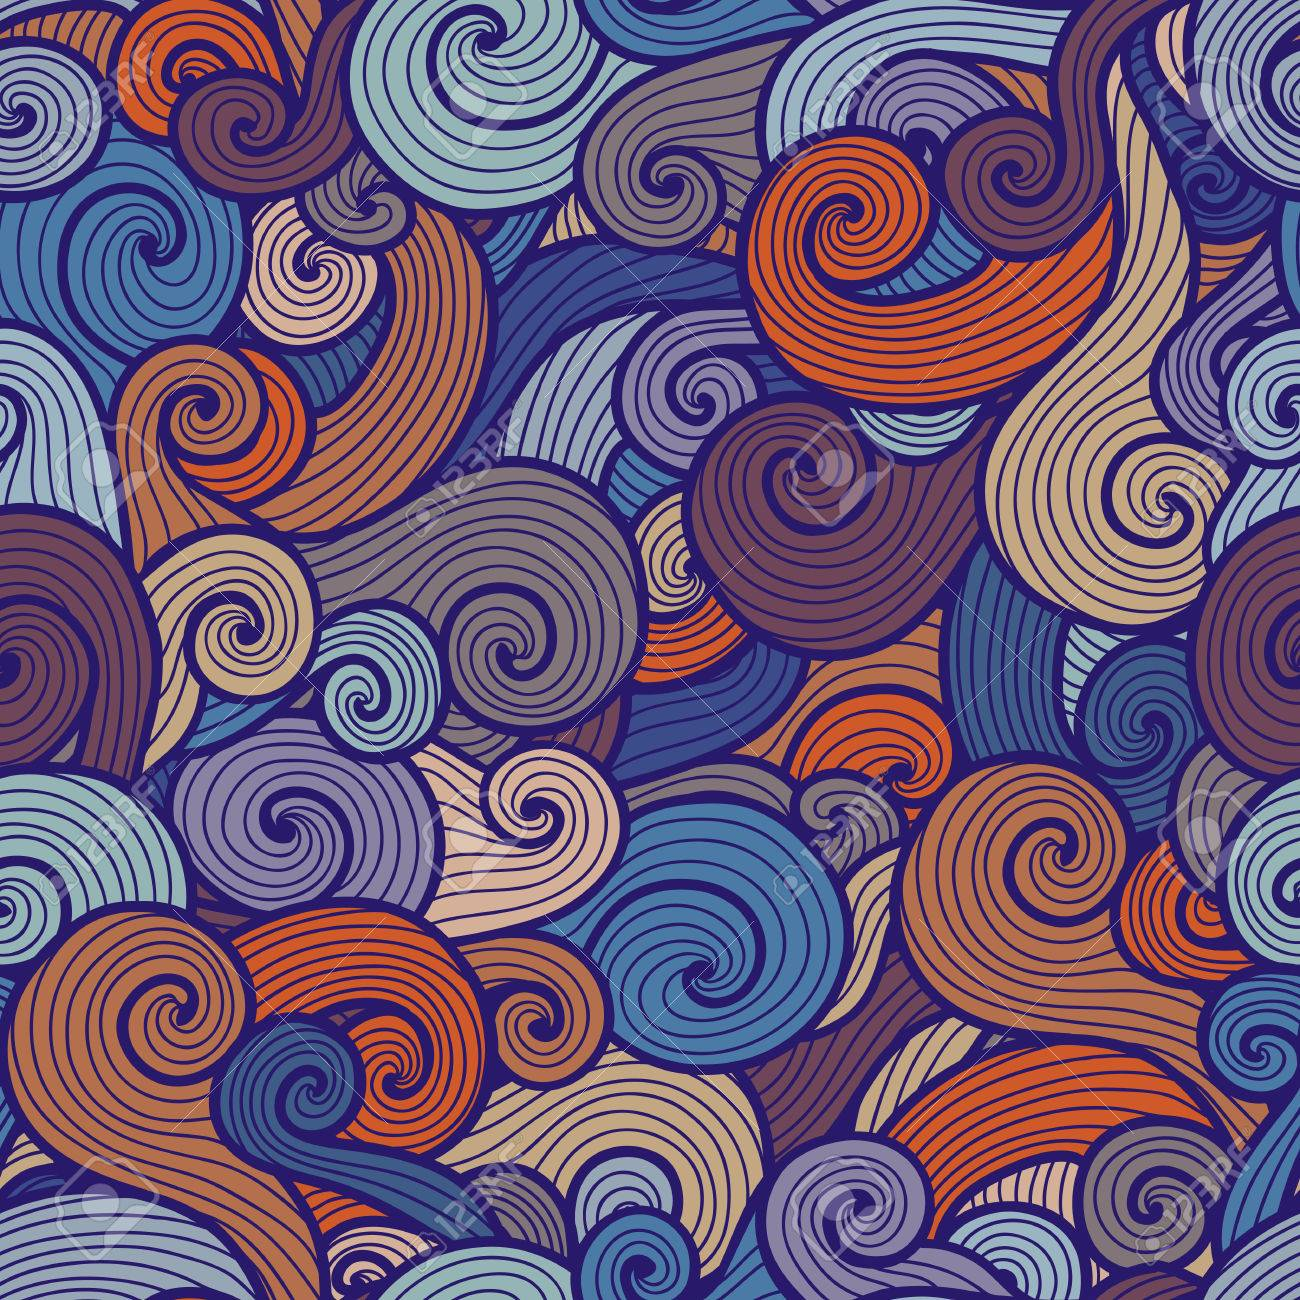 seamless curly pattern with spiral waves of different colors royalty free cliparts vectors and stock illustration image 34910726 seamless curly pattern with spiral waves of different colors